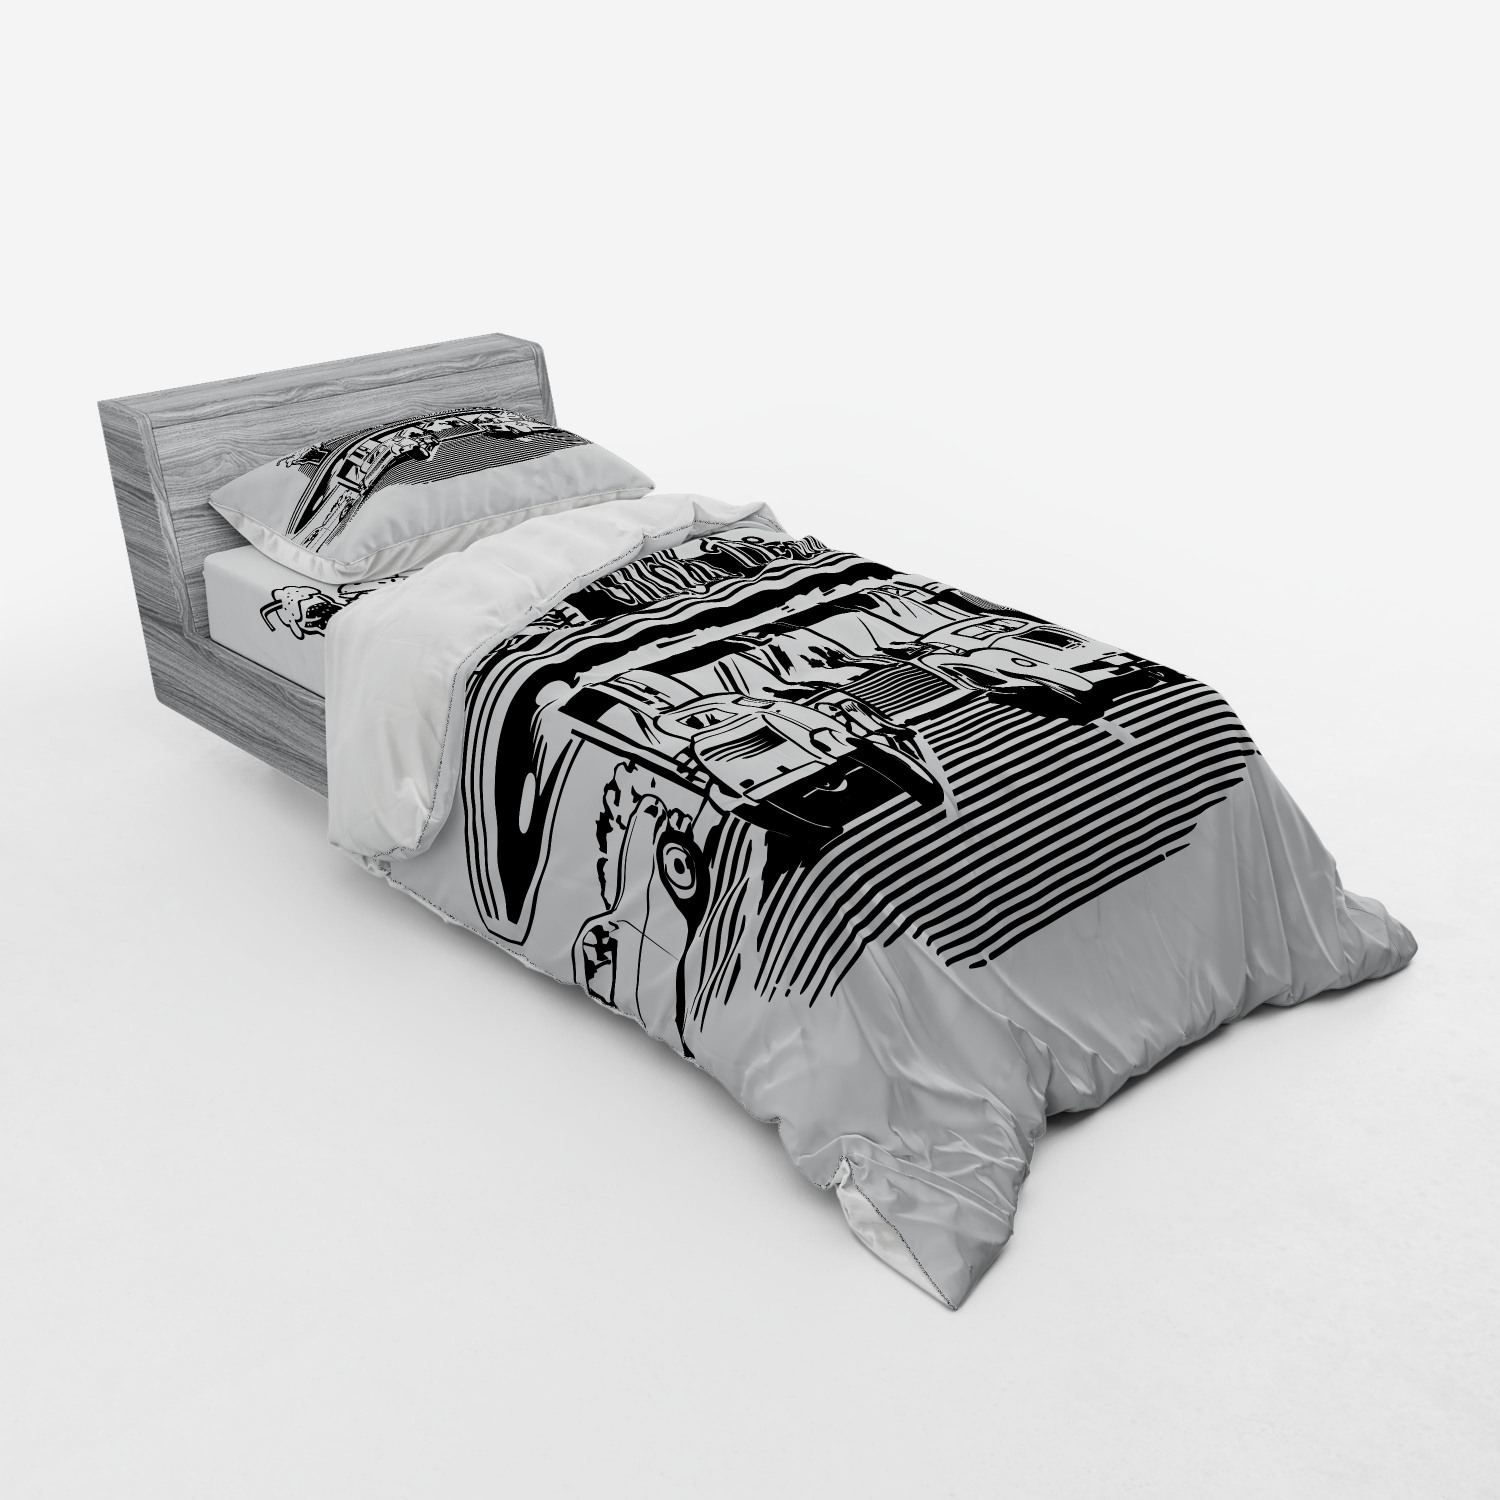 thumbnail 145 - Ambesonne Black White Art Bedding Set Duvet Cover Sham Fitted Sheet in 3 Sizes